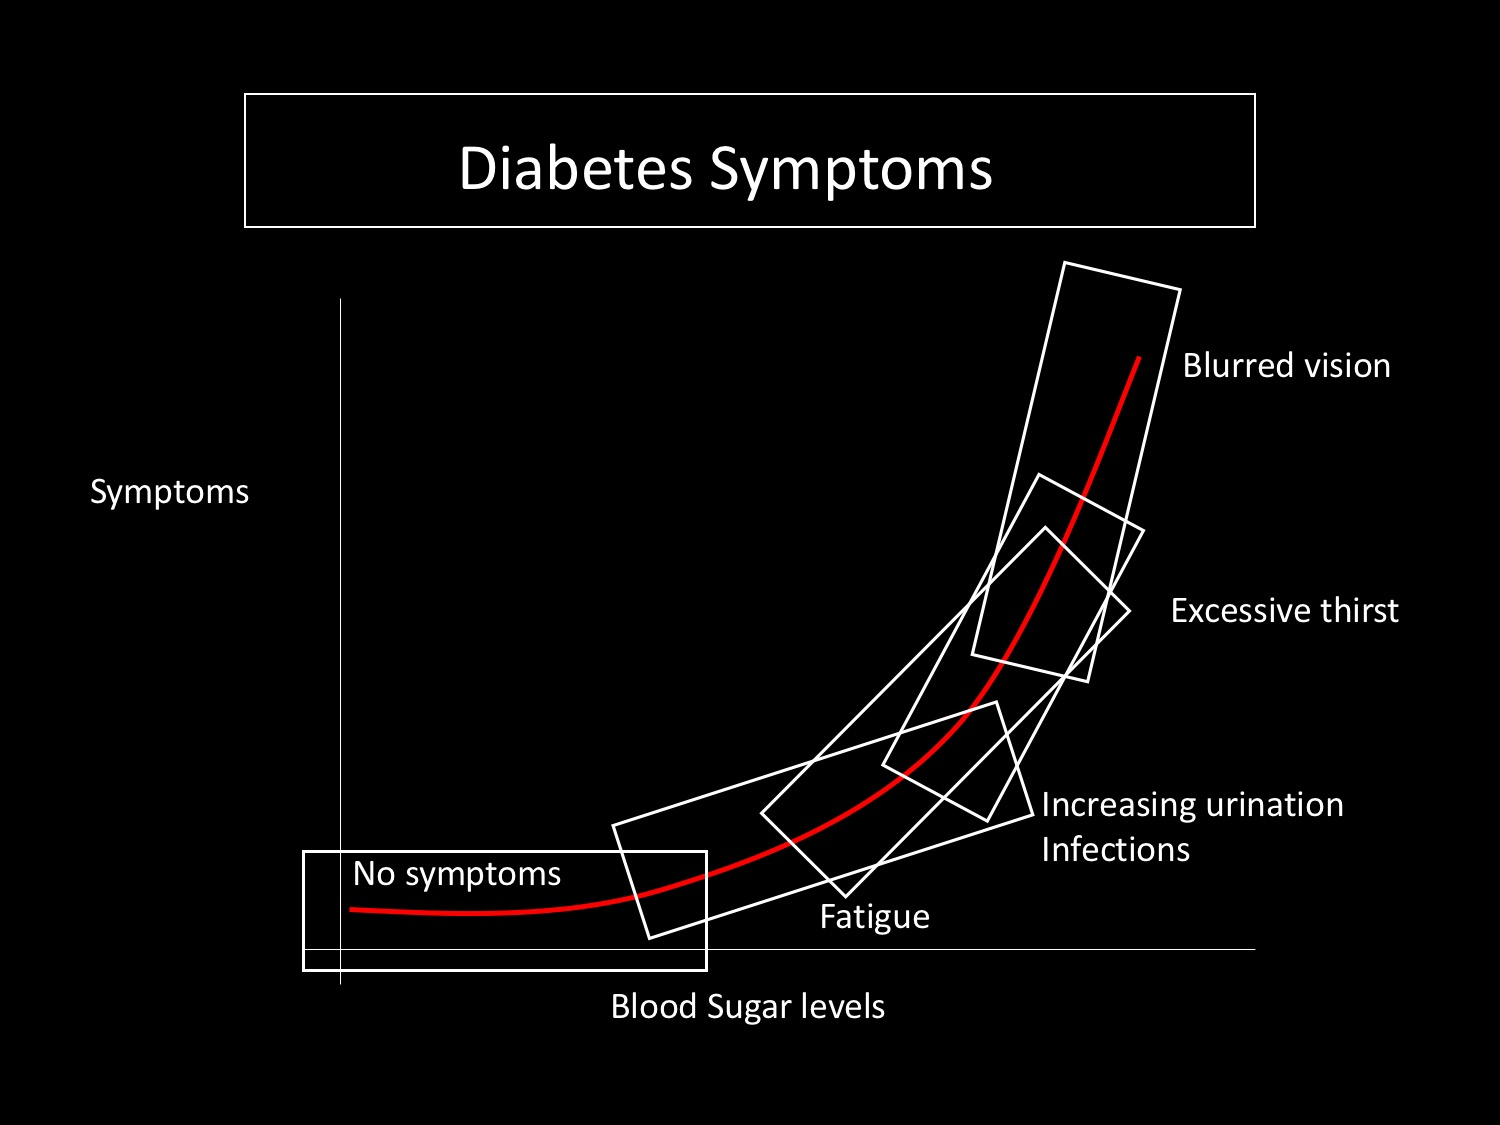 symptoms of diabetes is related to the severity of the condition and how long someone has had diabetes for